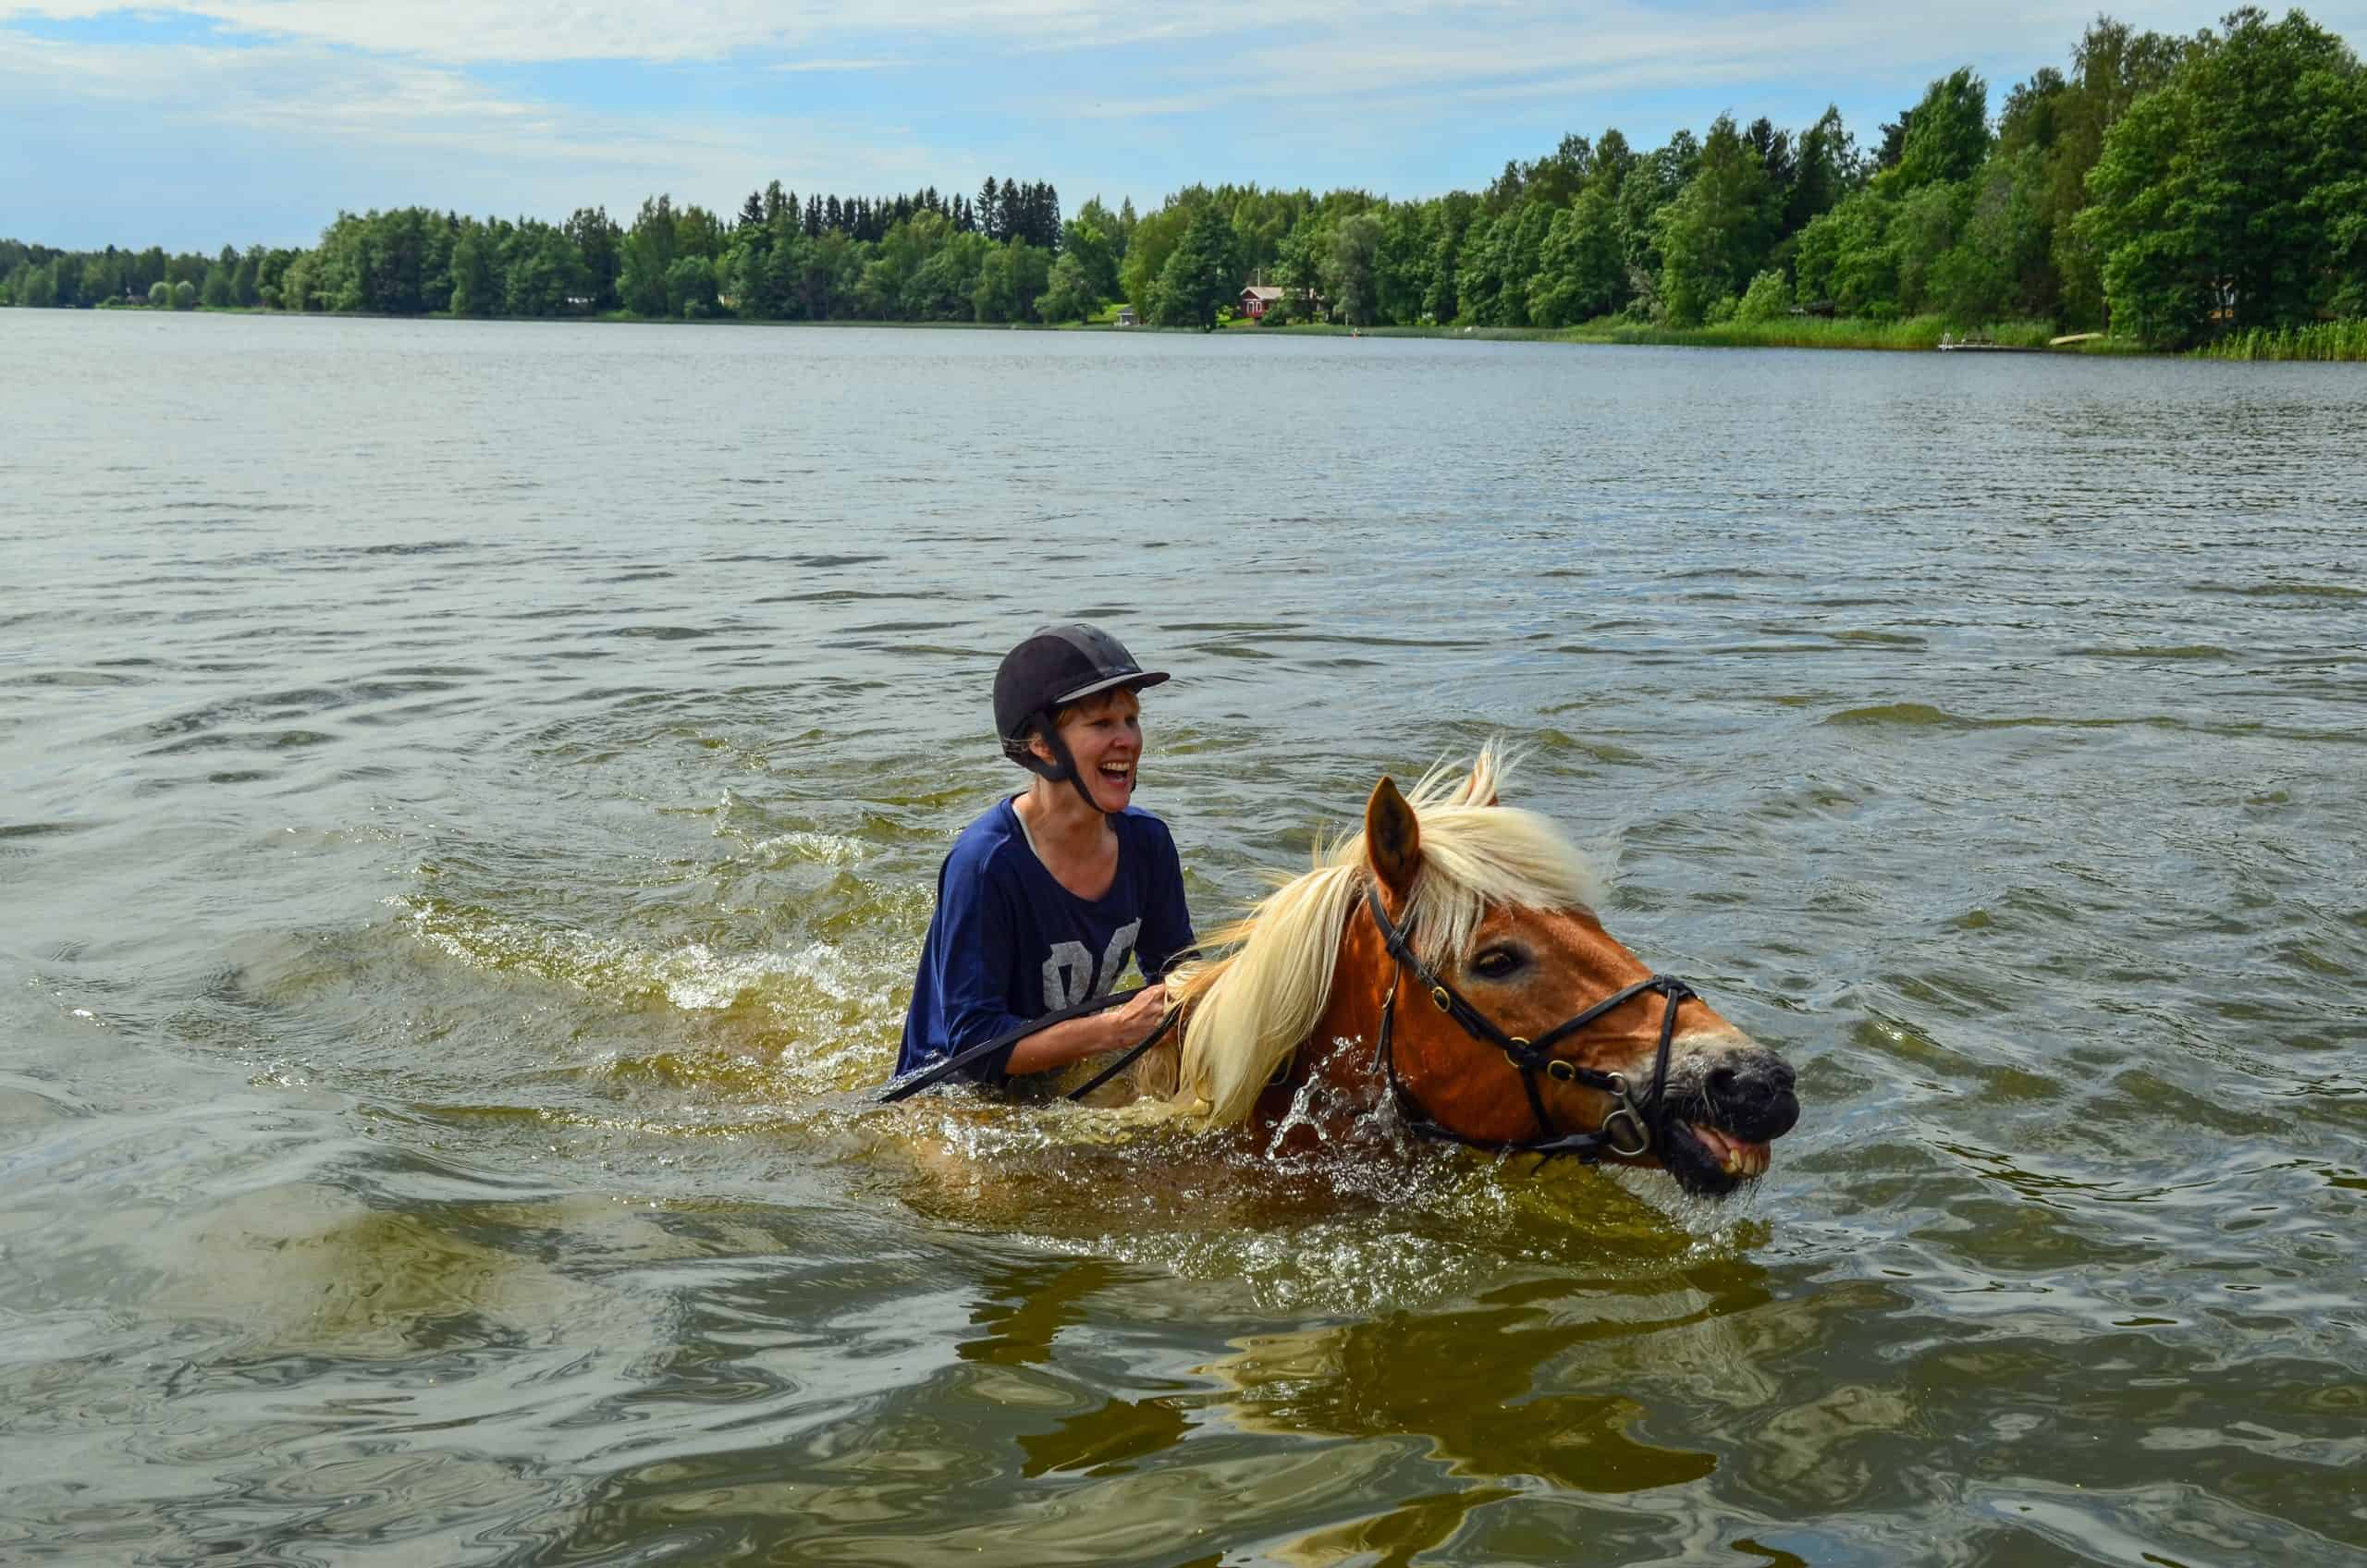 Horse swimming with woman rider